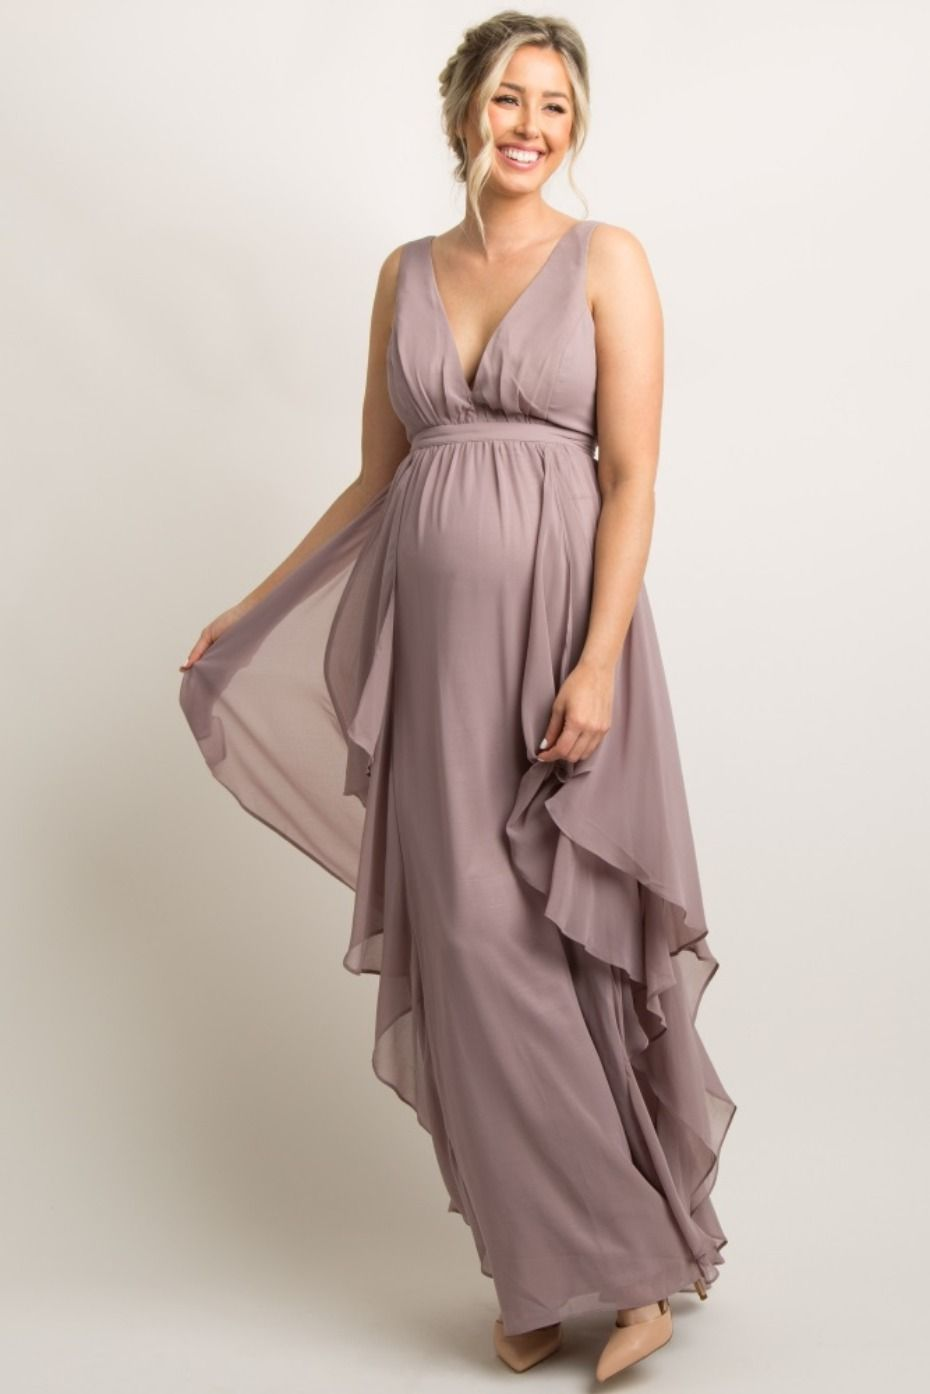 e2304c2a699 Blush maternity gown for the pregnant bridesmaid in your squad  bridesmaid   bridalparty  pregnant  bridesmaiddress